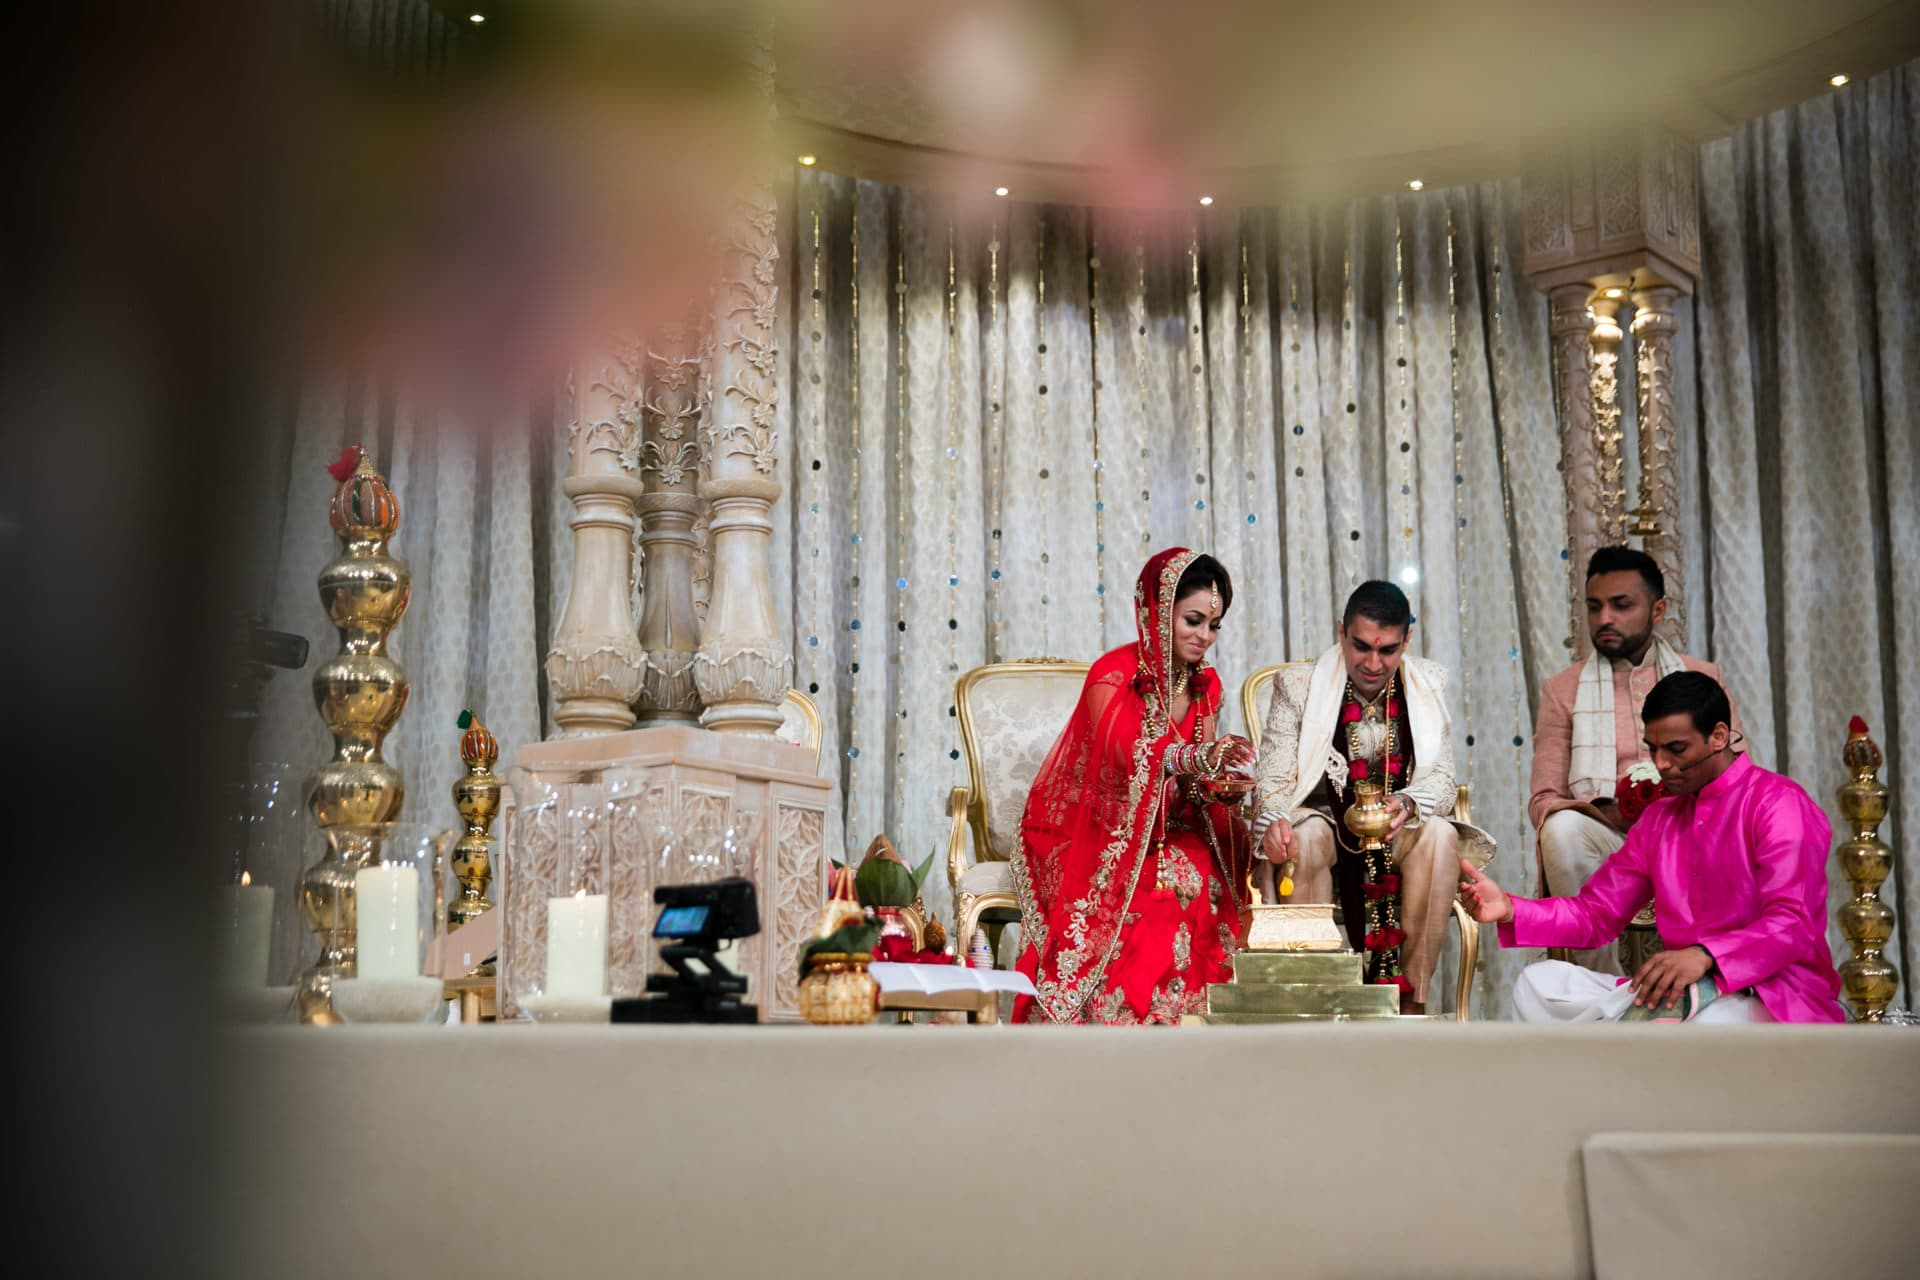 Hindu wedding couple performing Hindu wedding ceremony